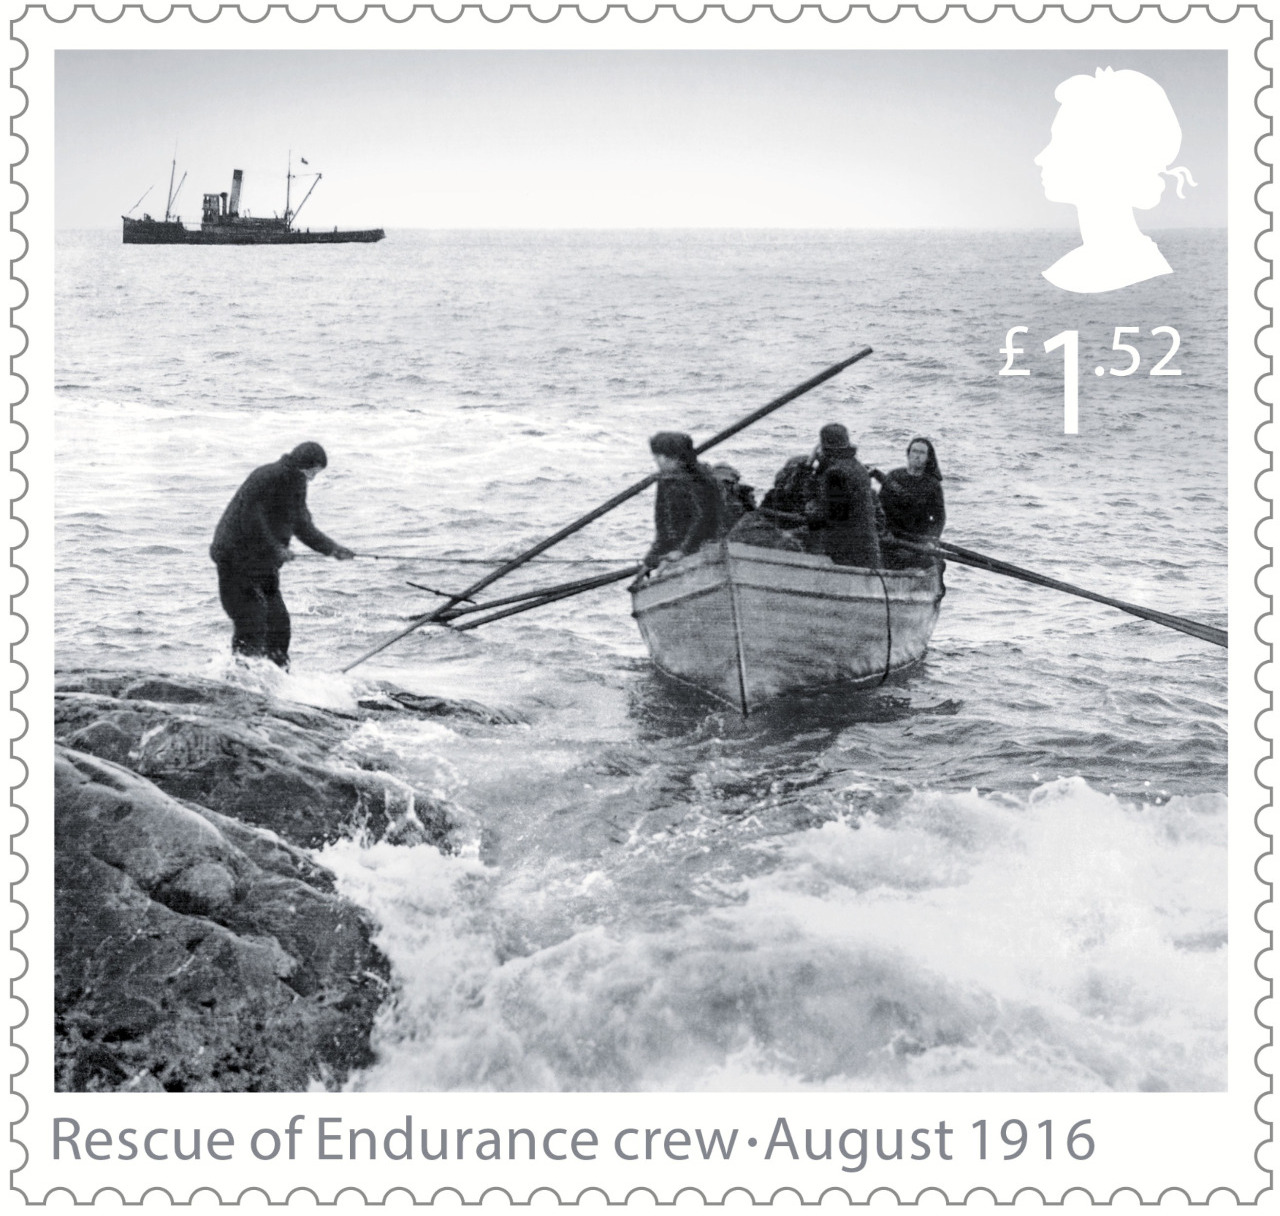 Commemorative Stamp for Elephant Island Rescue...